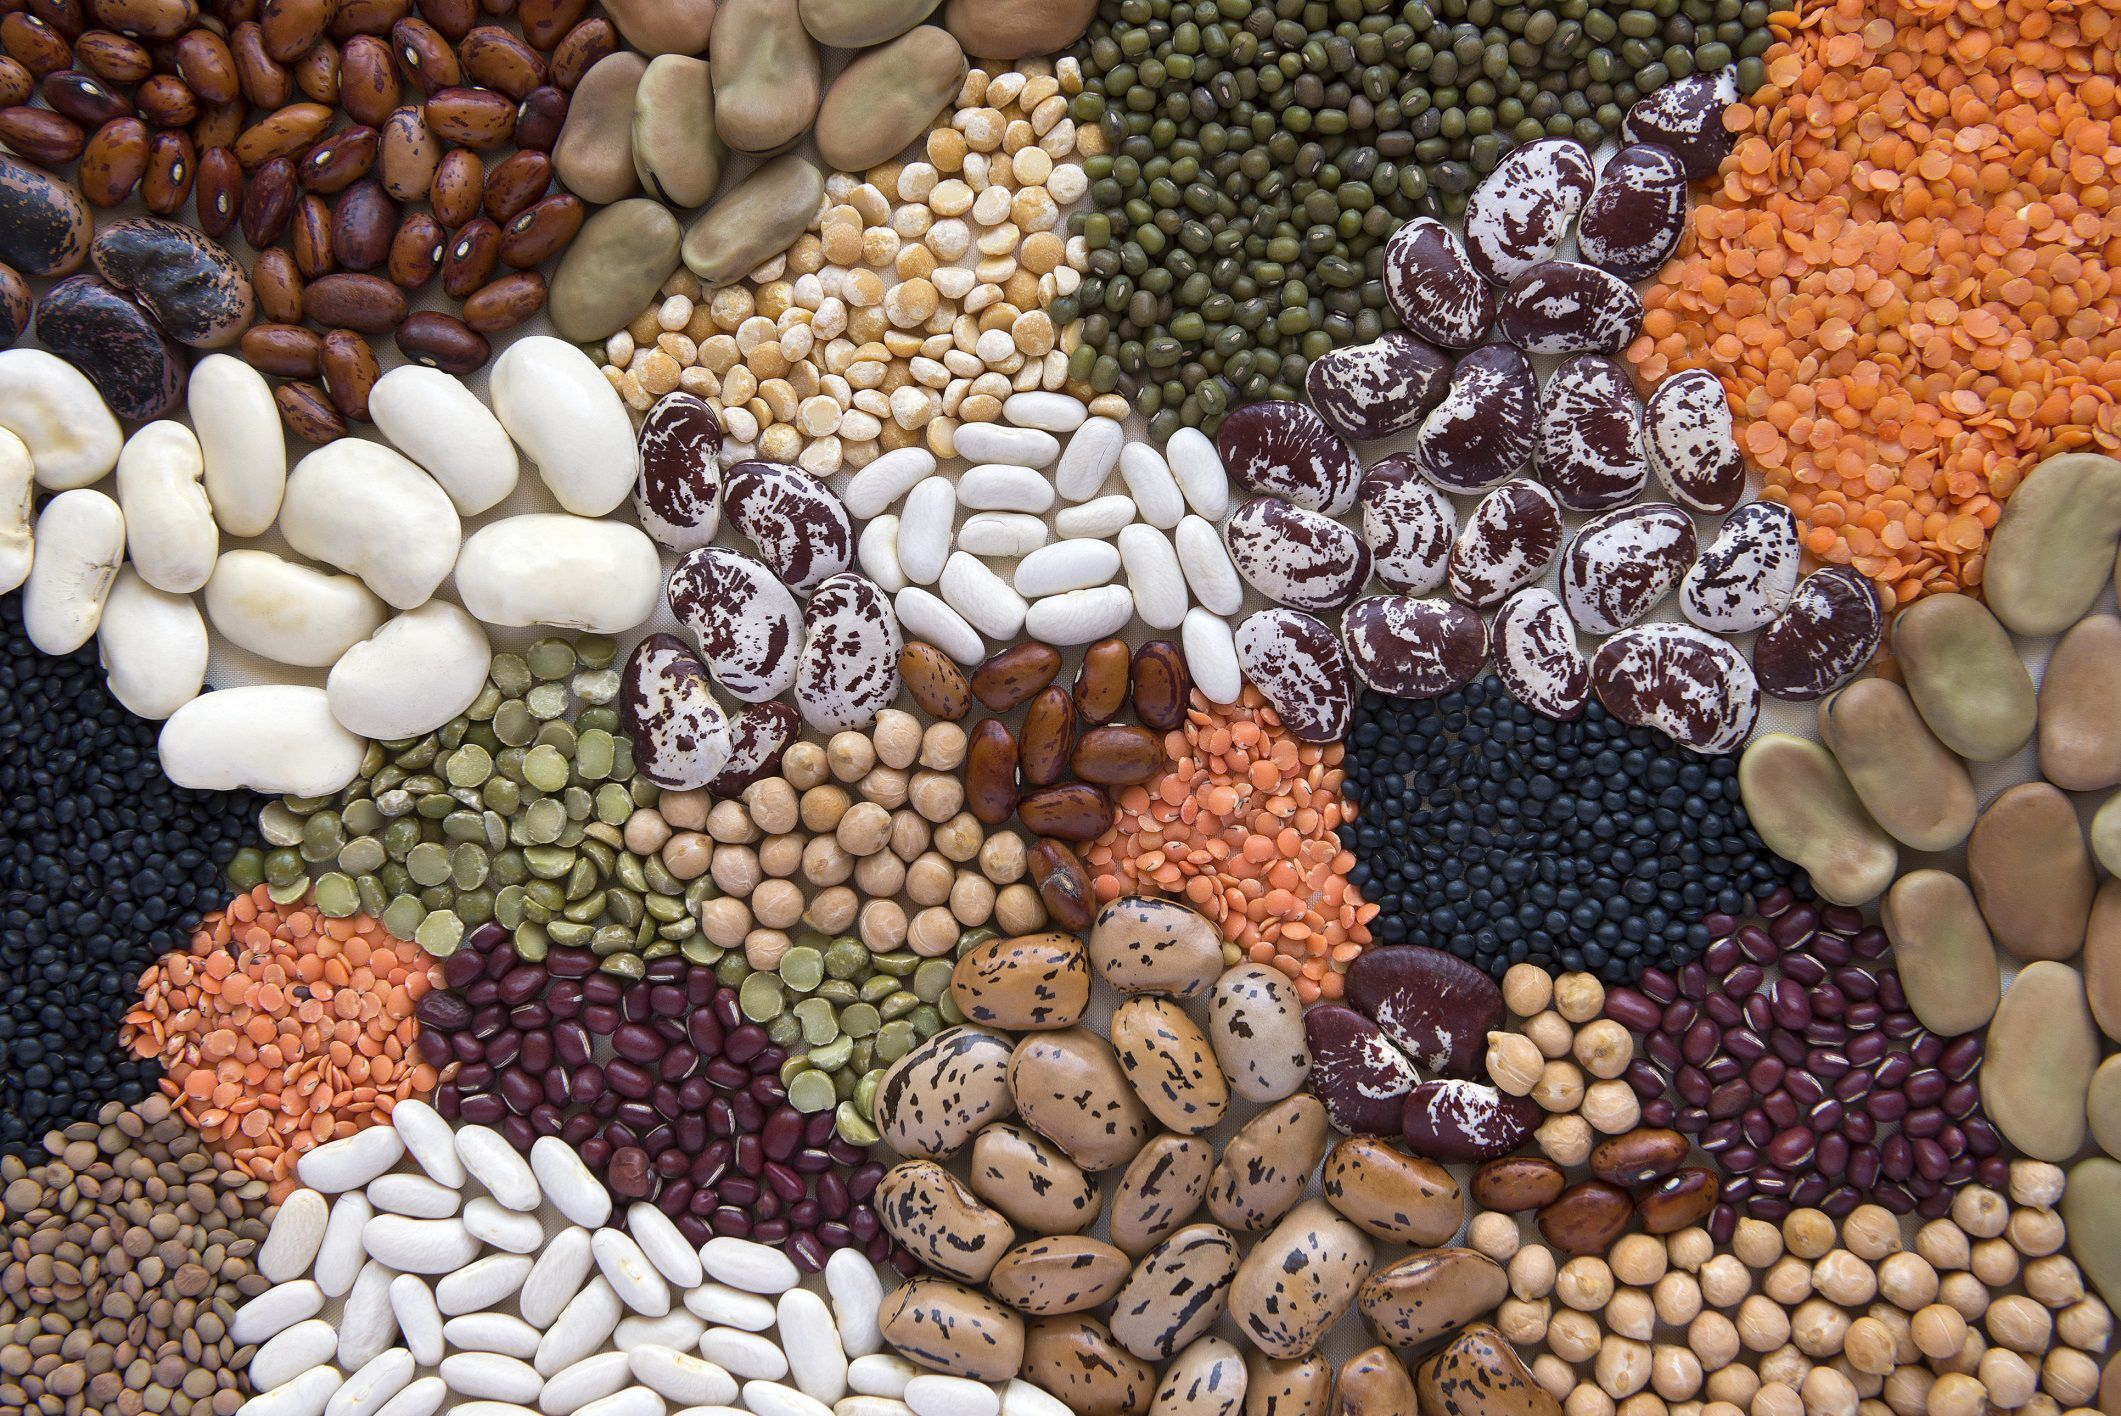 Beans and Other Nutritious Legumes for Low-Carb Diets